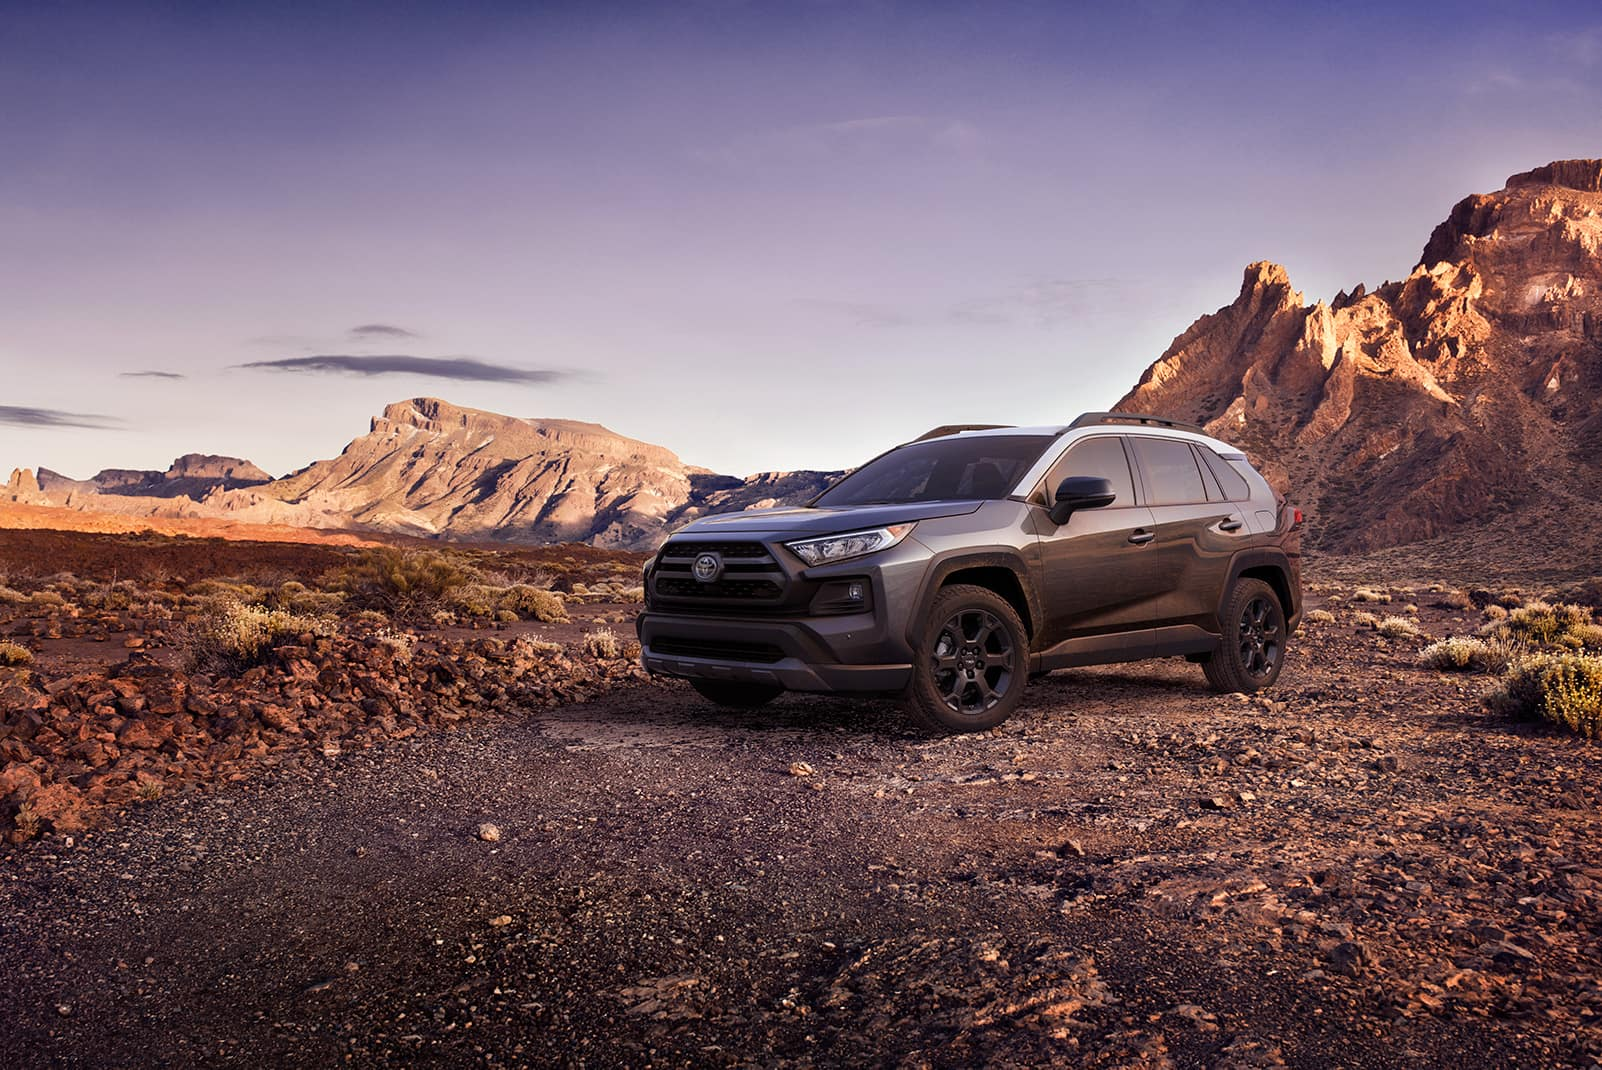 Performance features of the 2020 Toyota RAV4 at Boch Toyota | grey 2020 RAV4 parked on mountain terrain